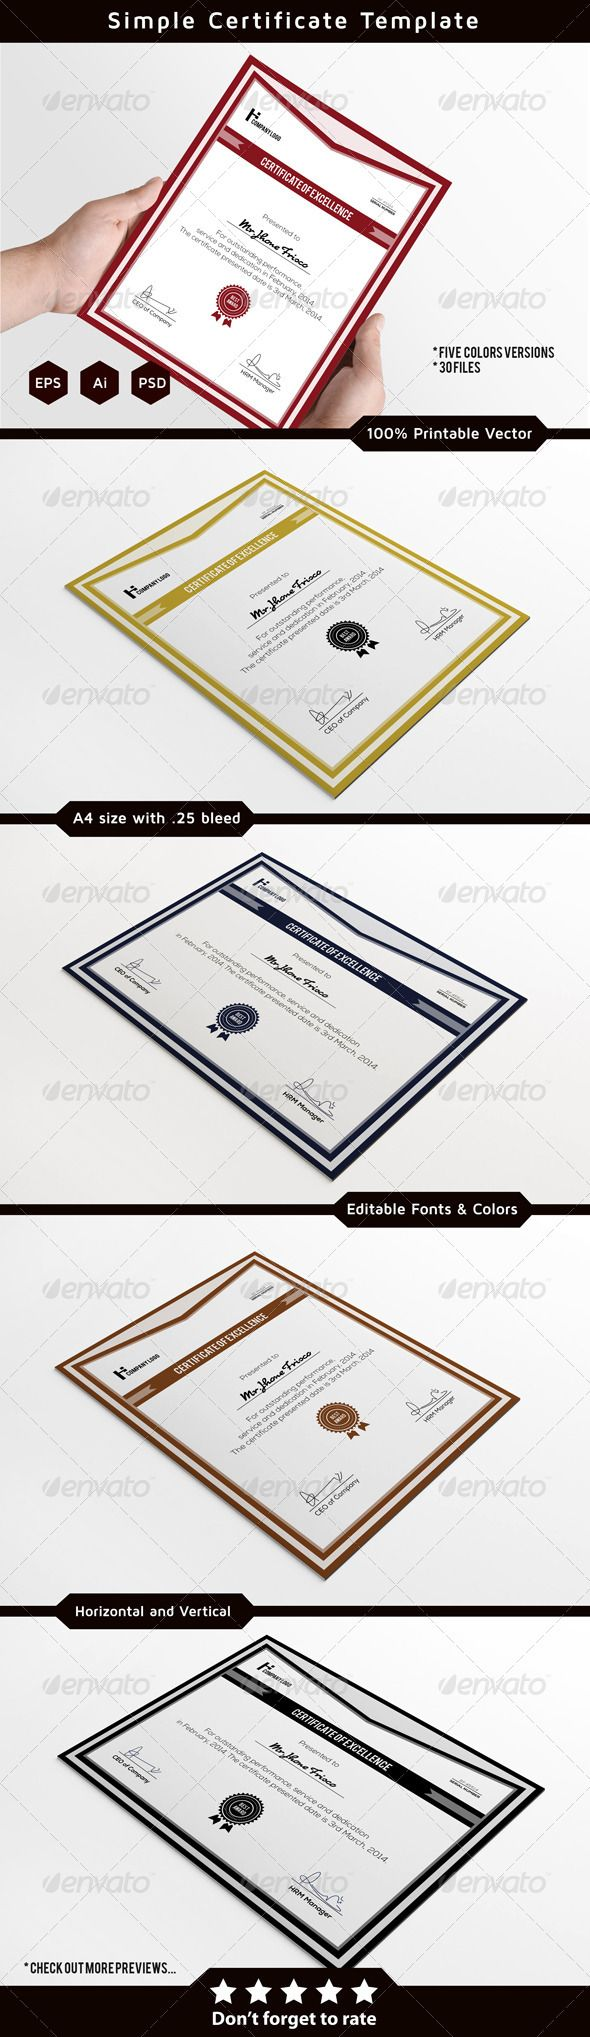 Corporate Certificate Template    Colours Texts And